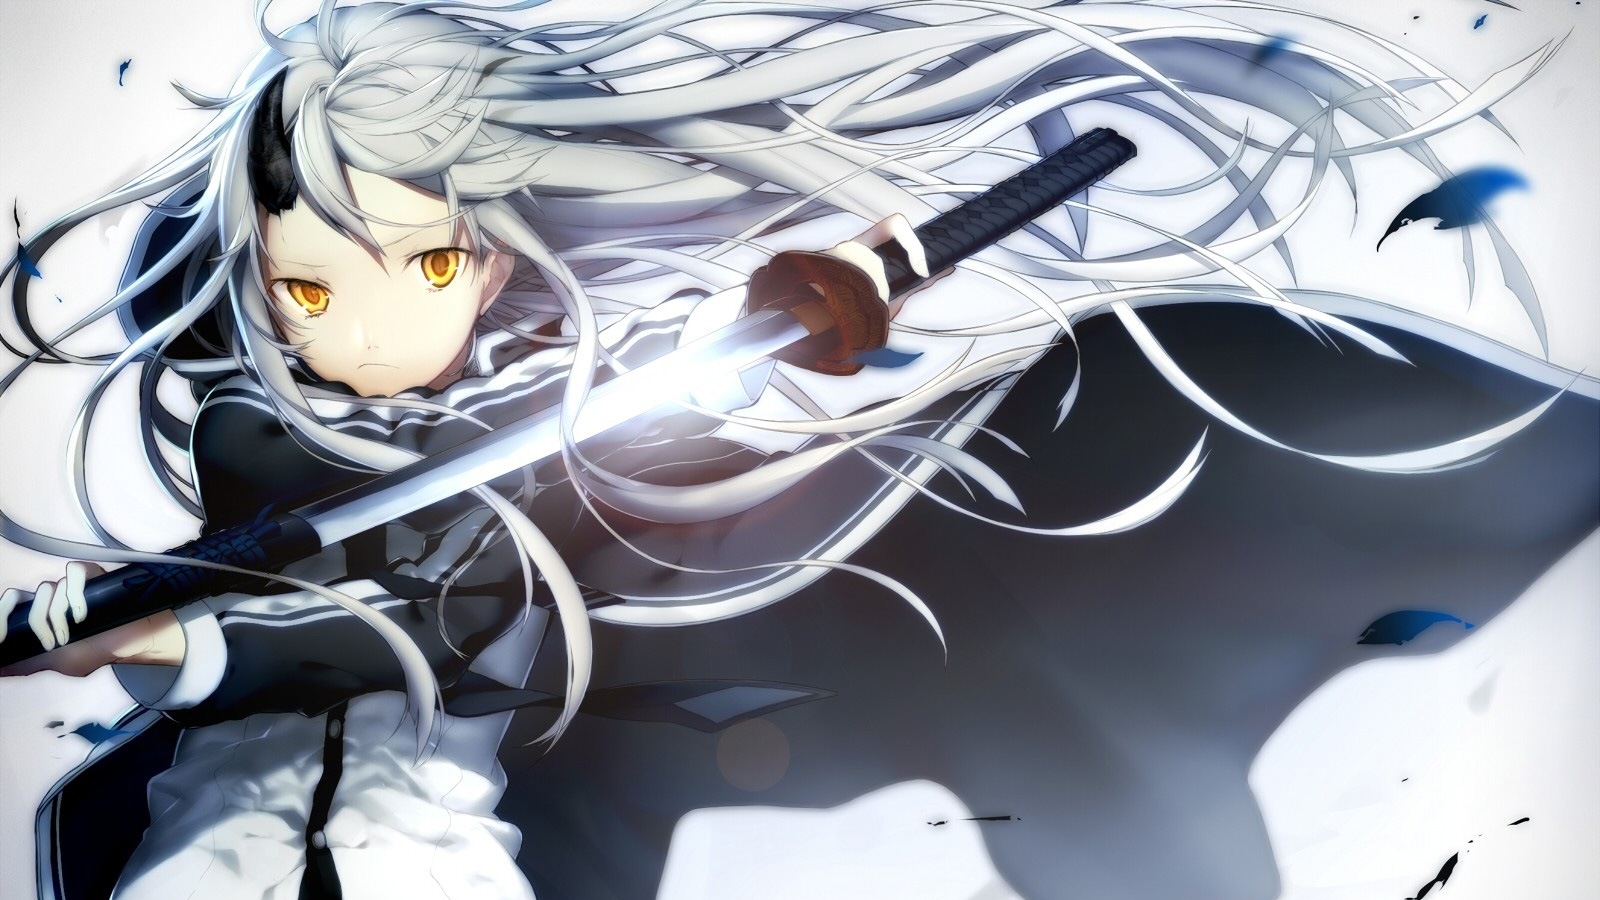 White hair, Sword, Yellow Eyes